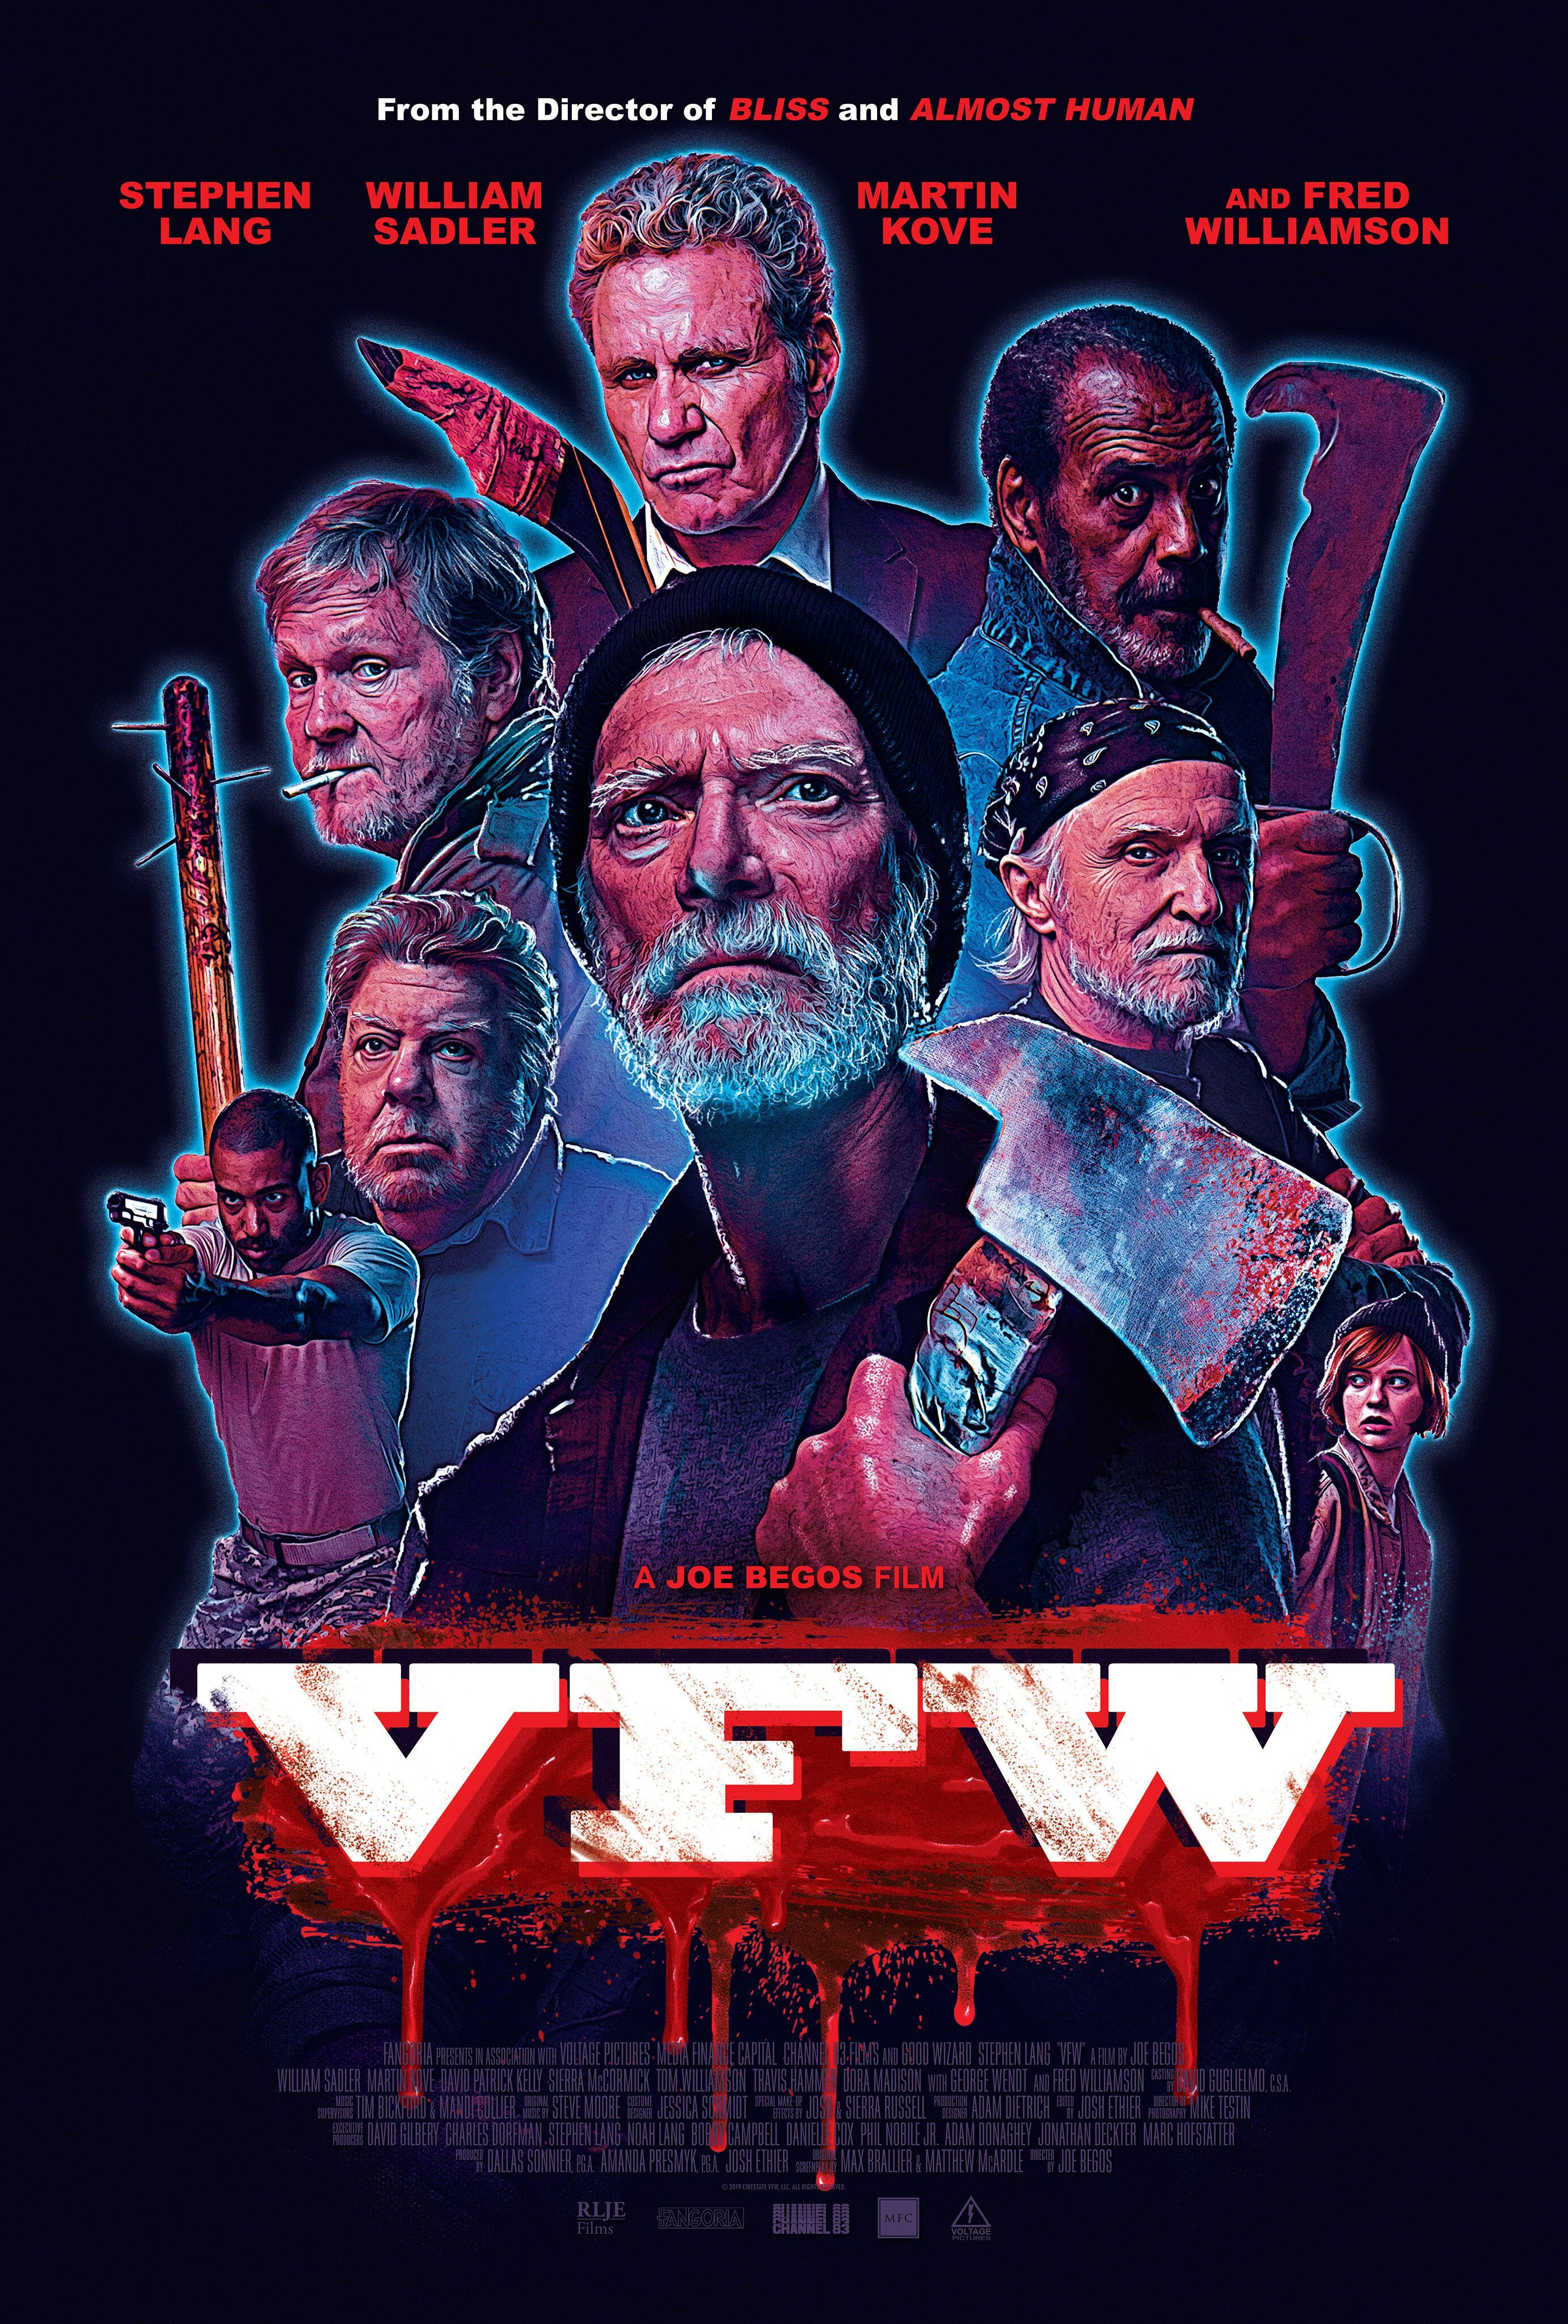 Image result for vfw movie poster